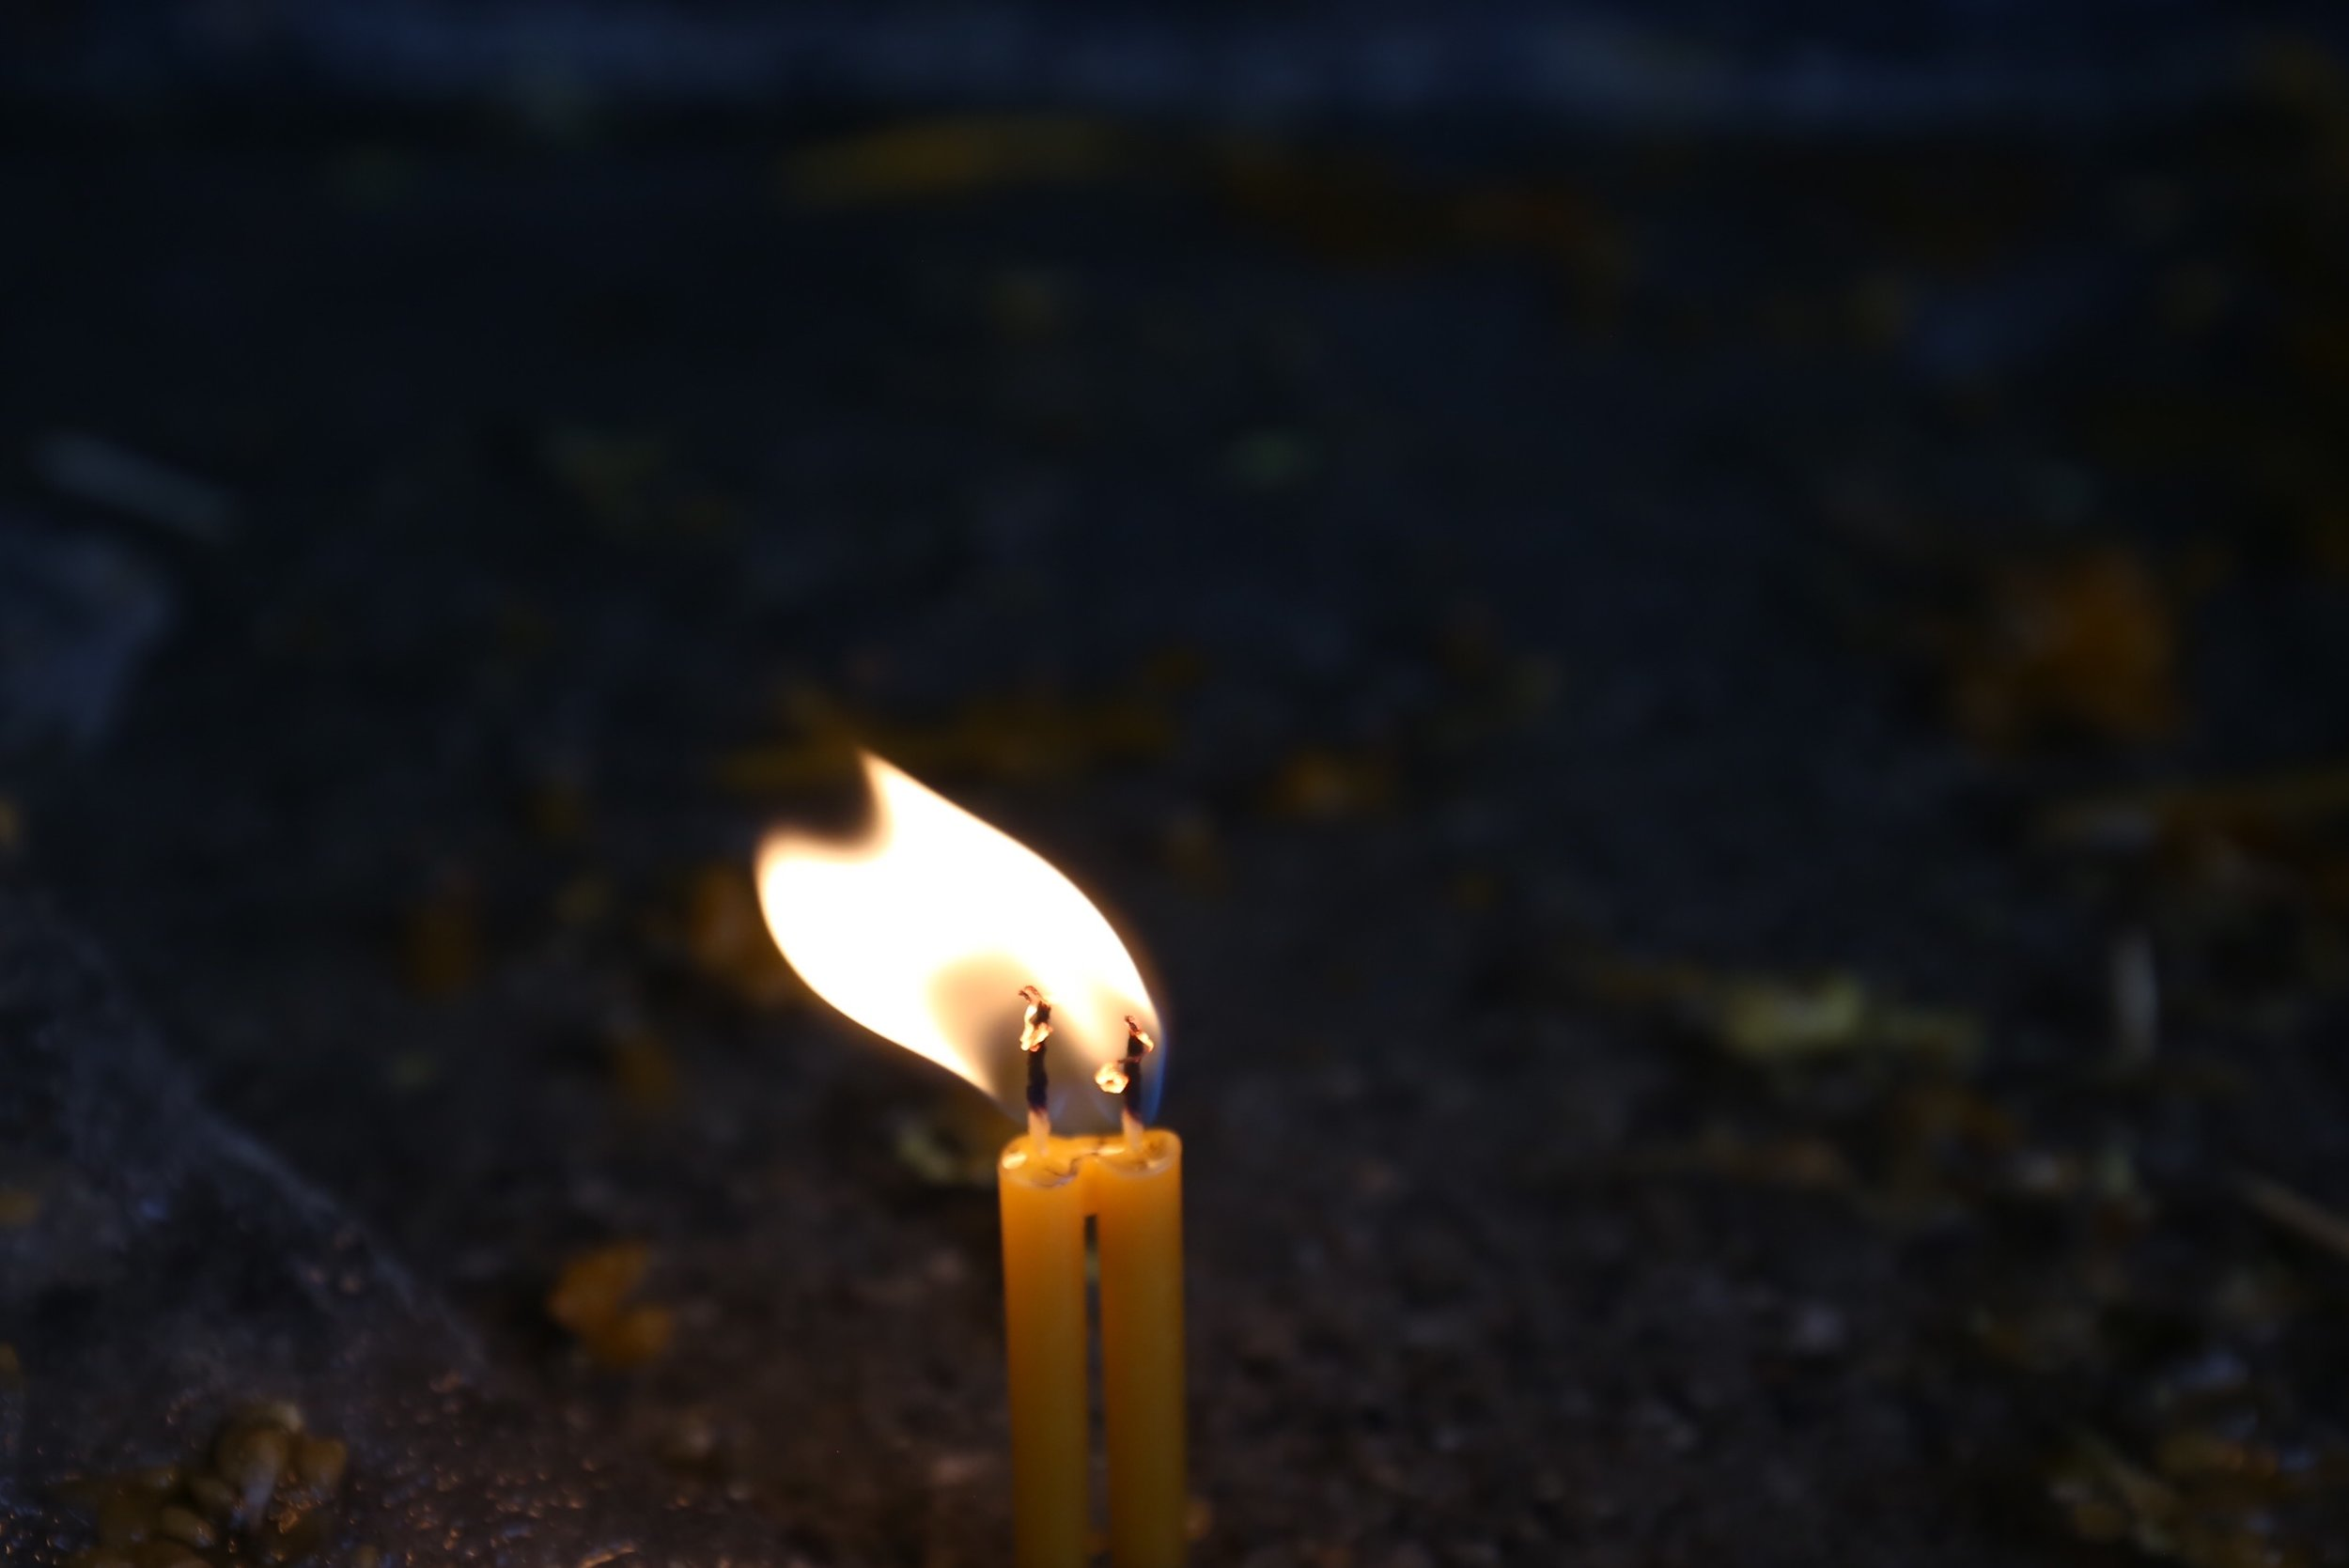 Two flames join from two prayer candles.